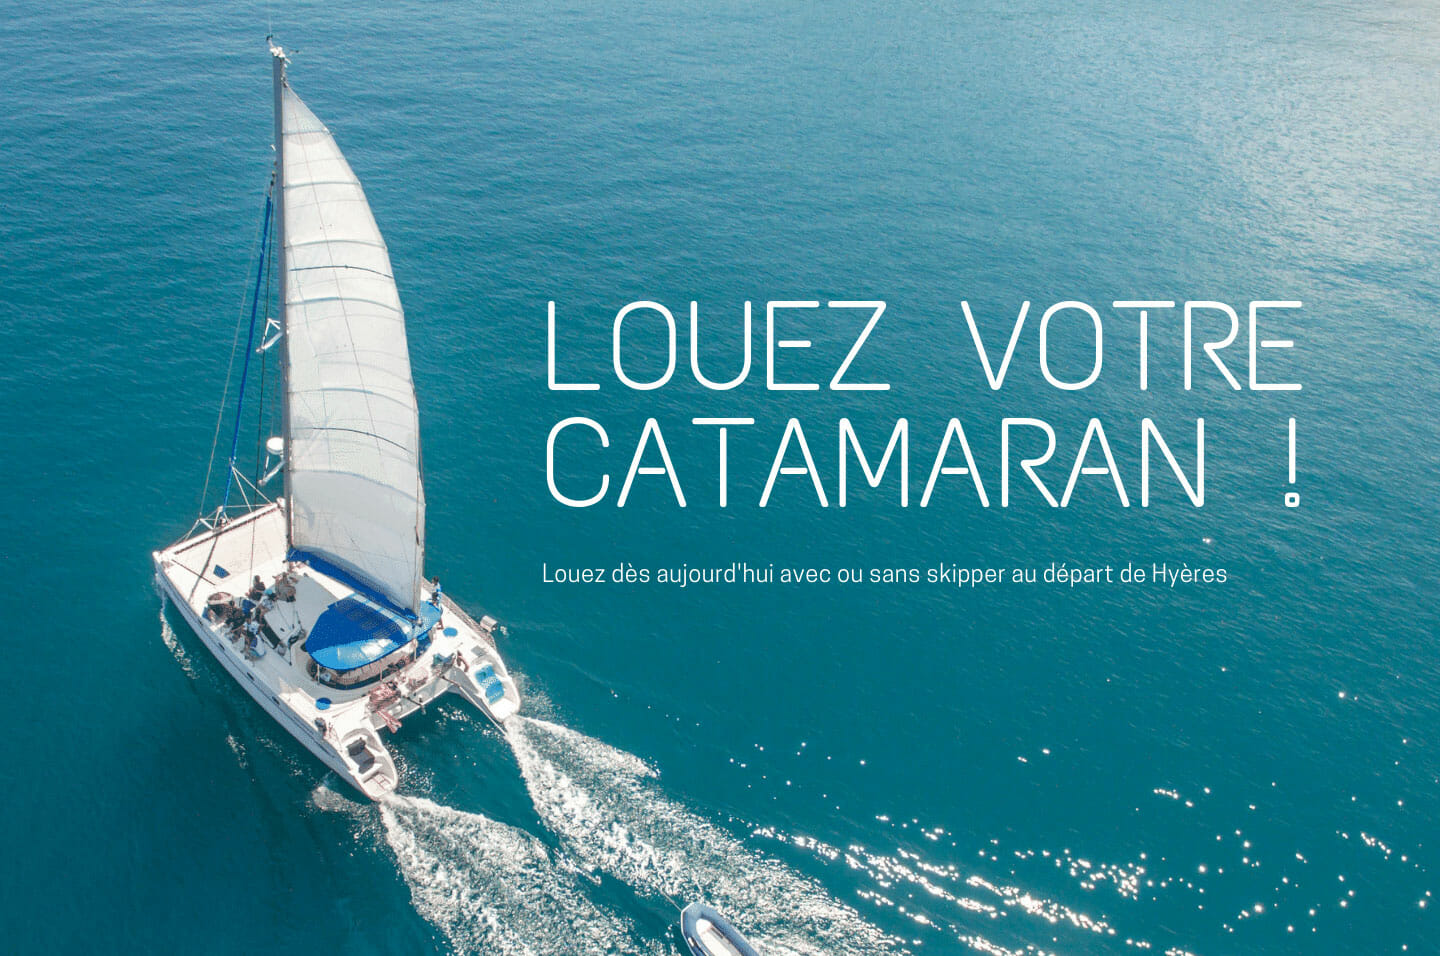 acm-location-catamaran